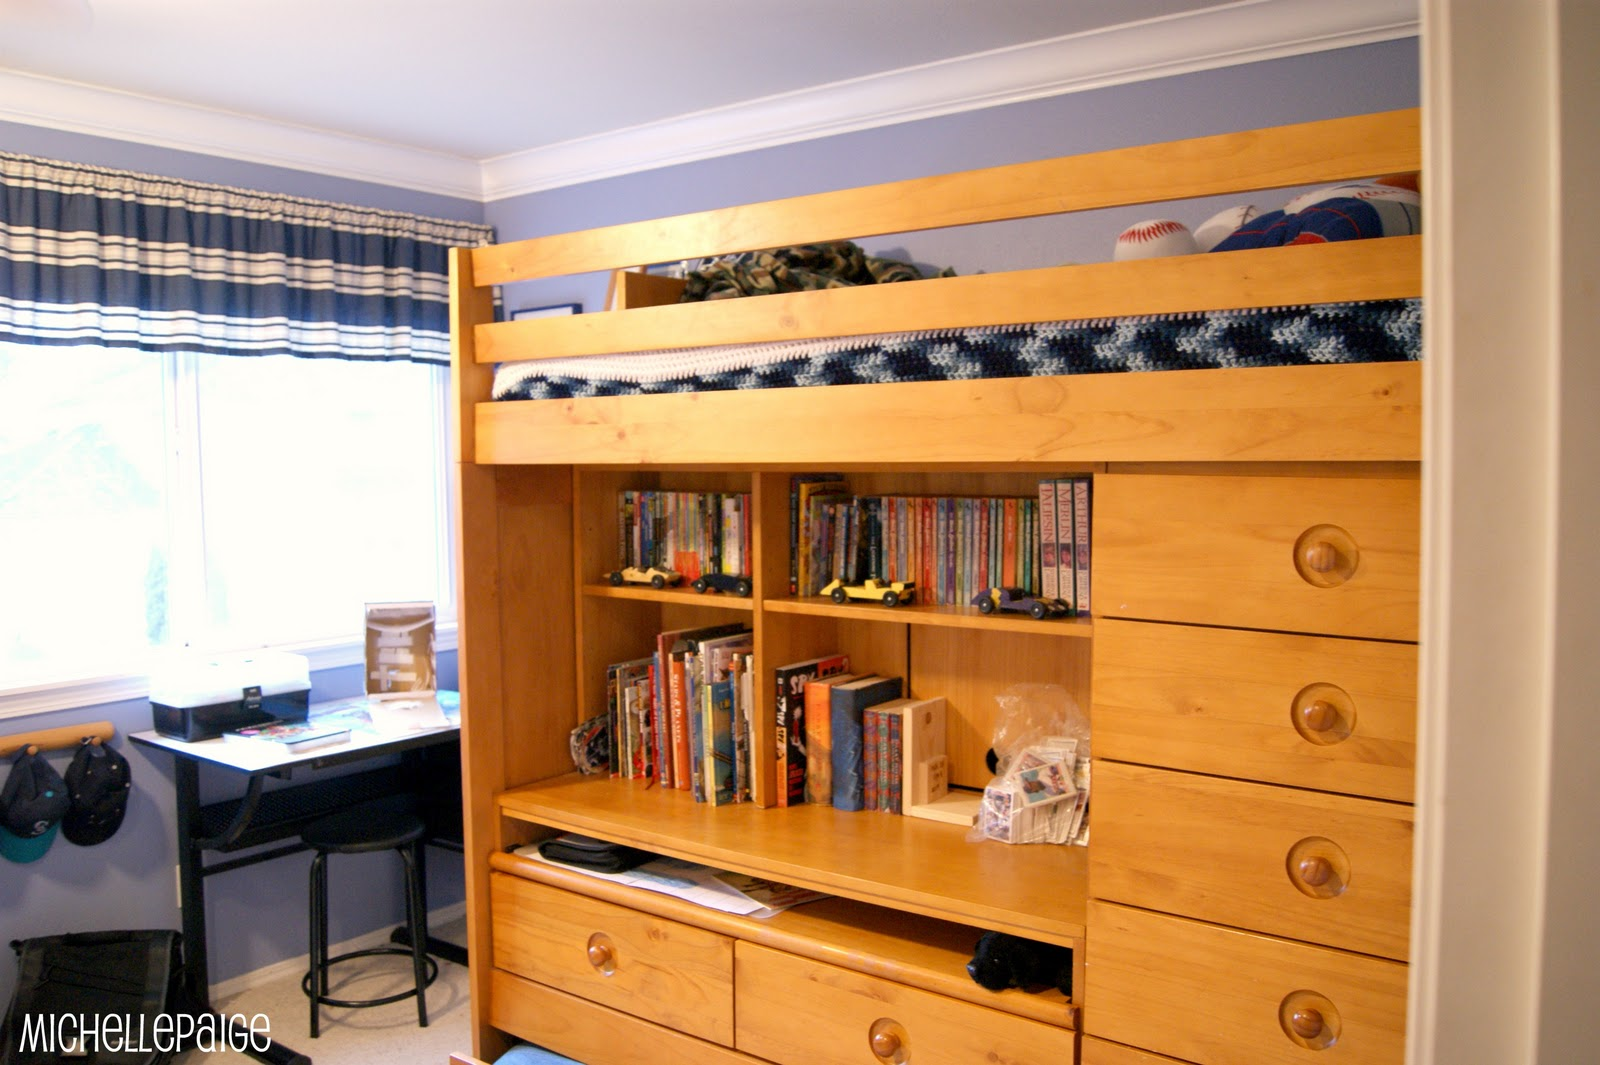 michelle paige blogs organizing a crafty kid 39 s room